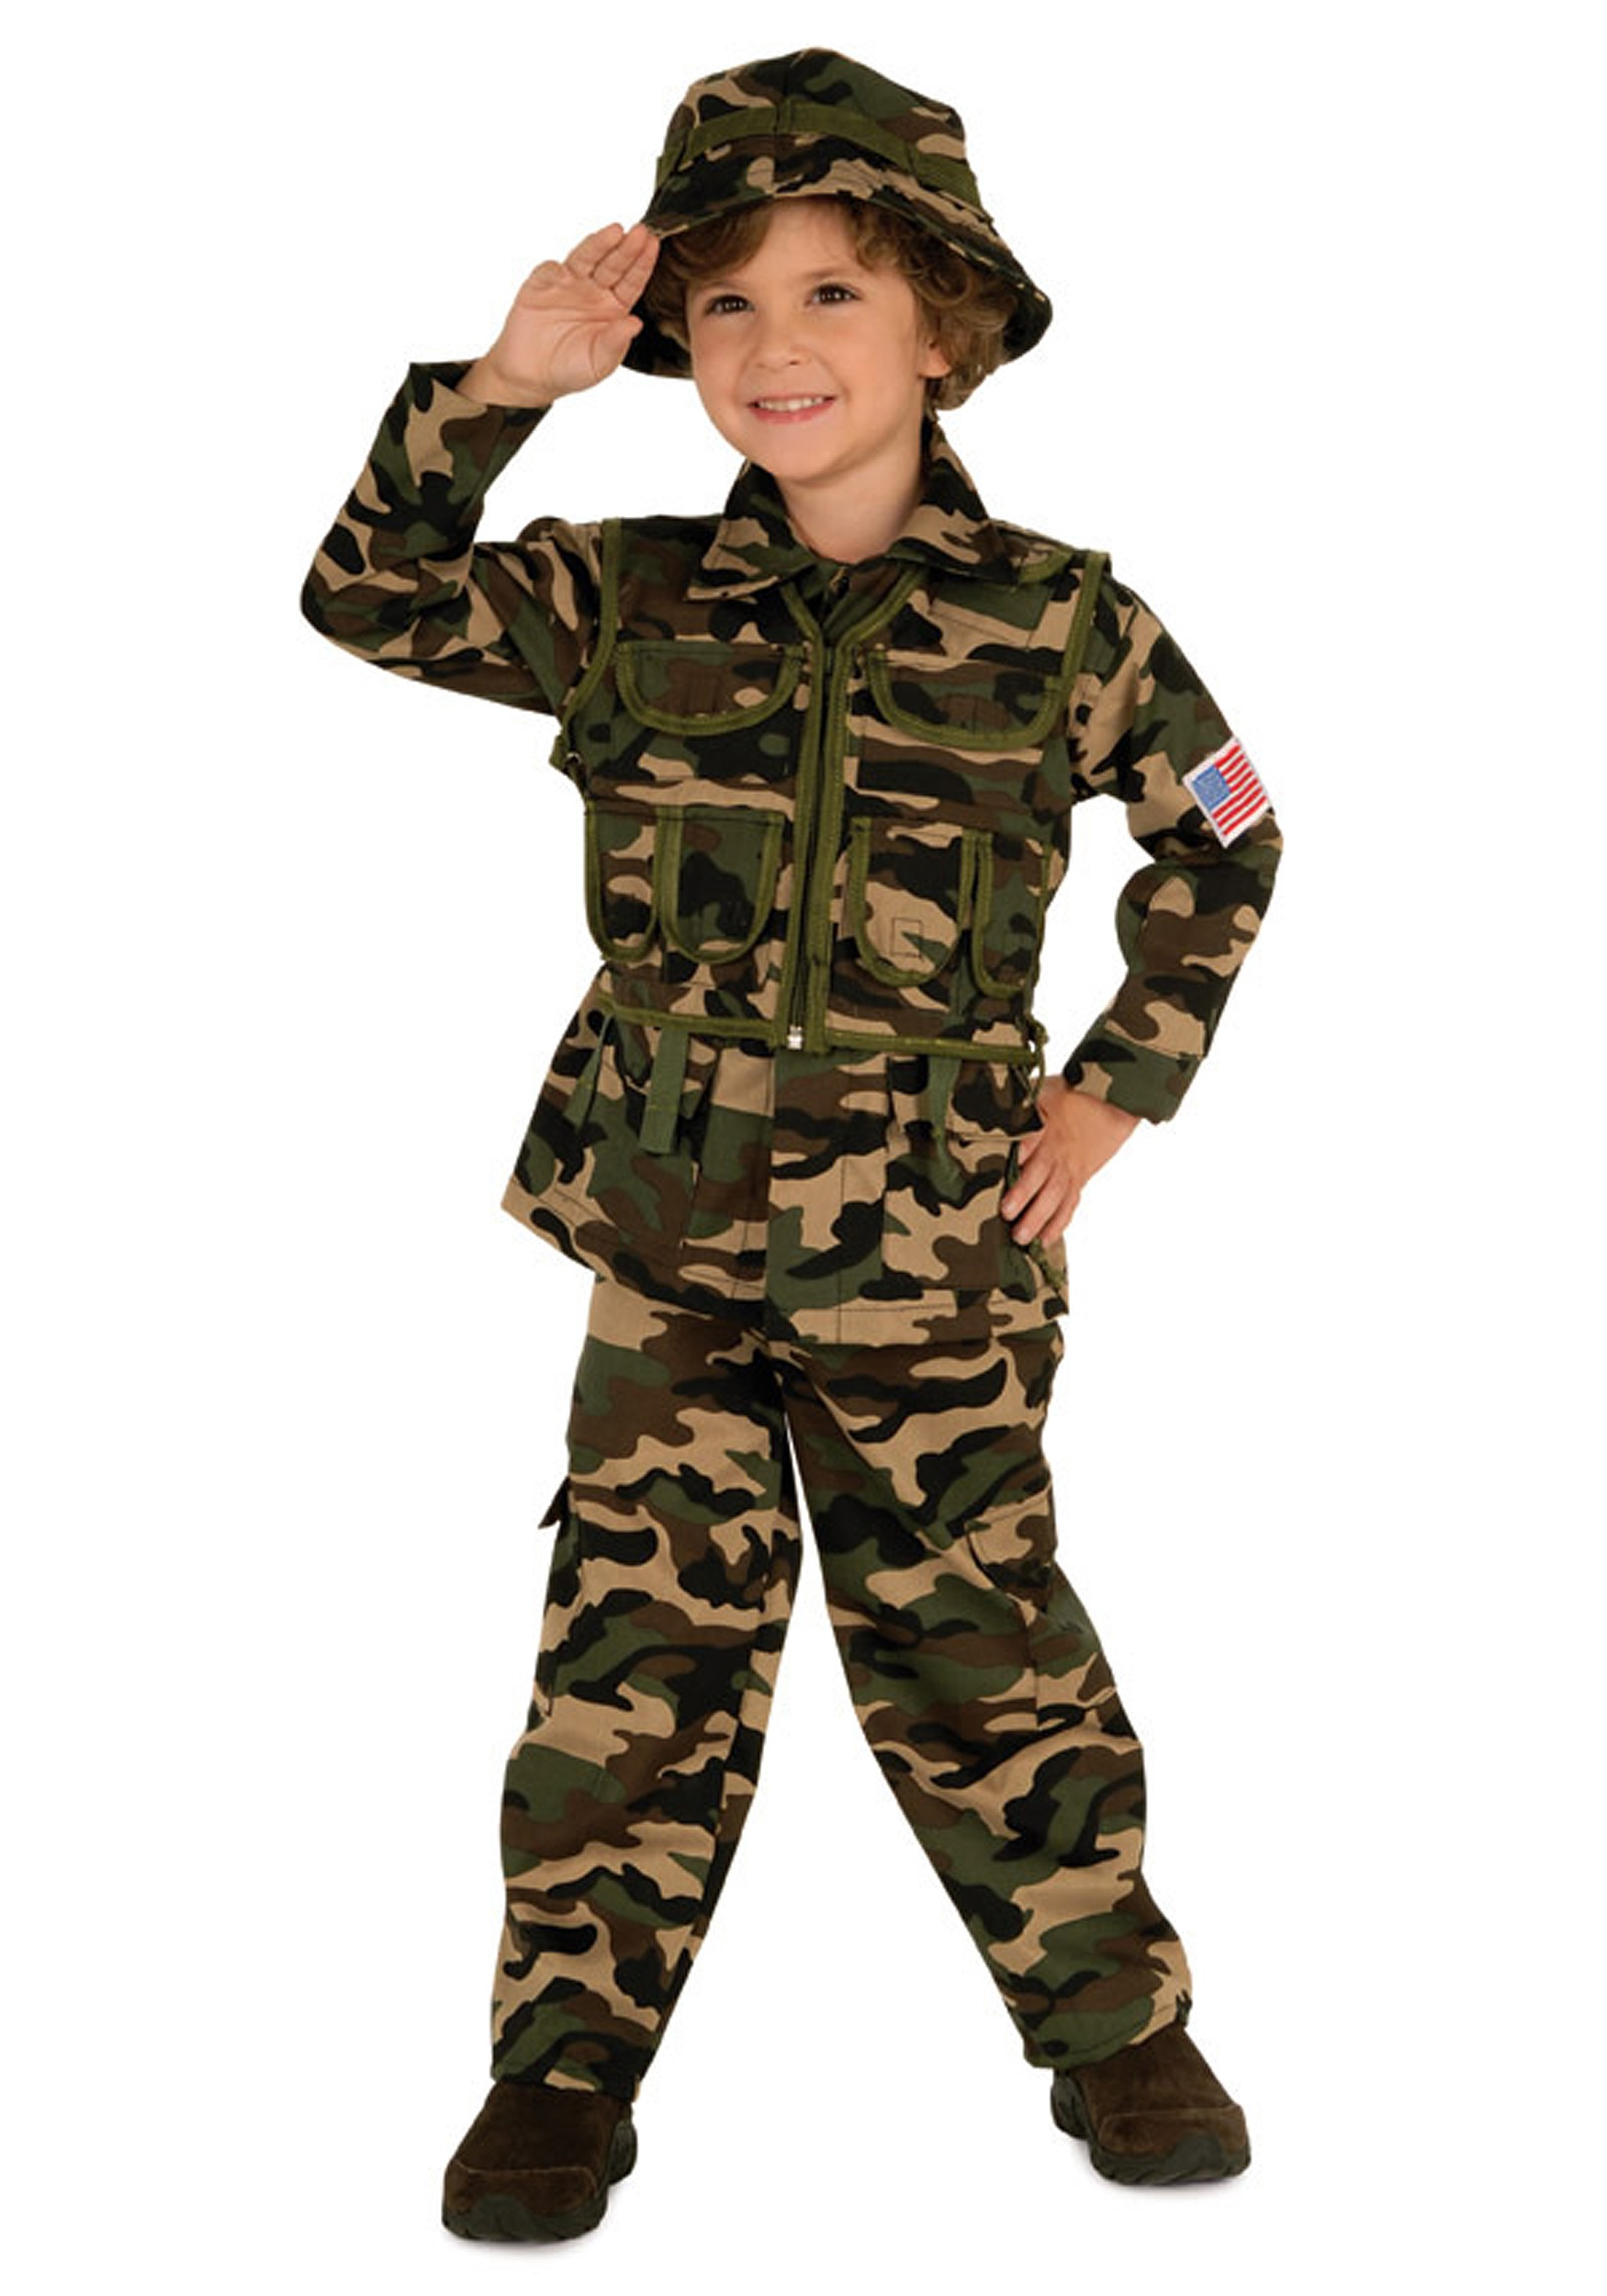 Children's Camouflage T-shirts, Children's Camo Clothing-Children's Camo Pants and Shirts, Children's Camo Caps, Children's Military Barre Army Navy Store New MultiCam Camouflage Clothing MultiCam BDU's and Tactical Response Uniform. Military Backpacks.